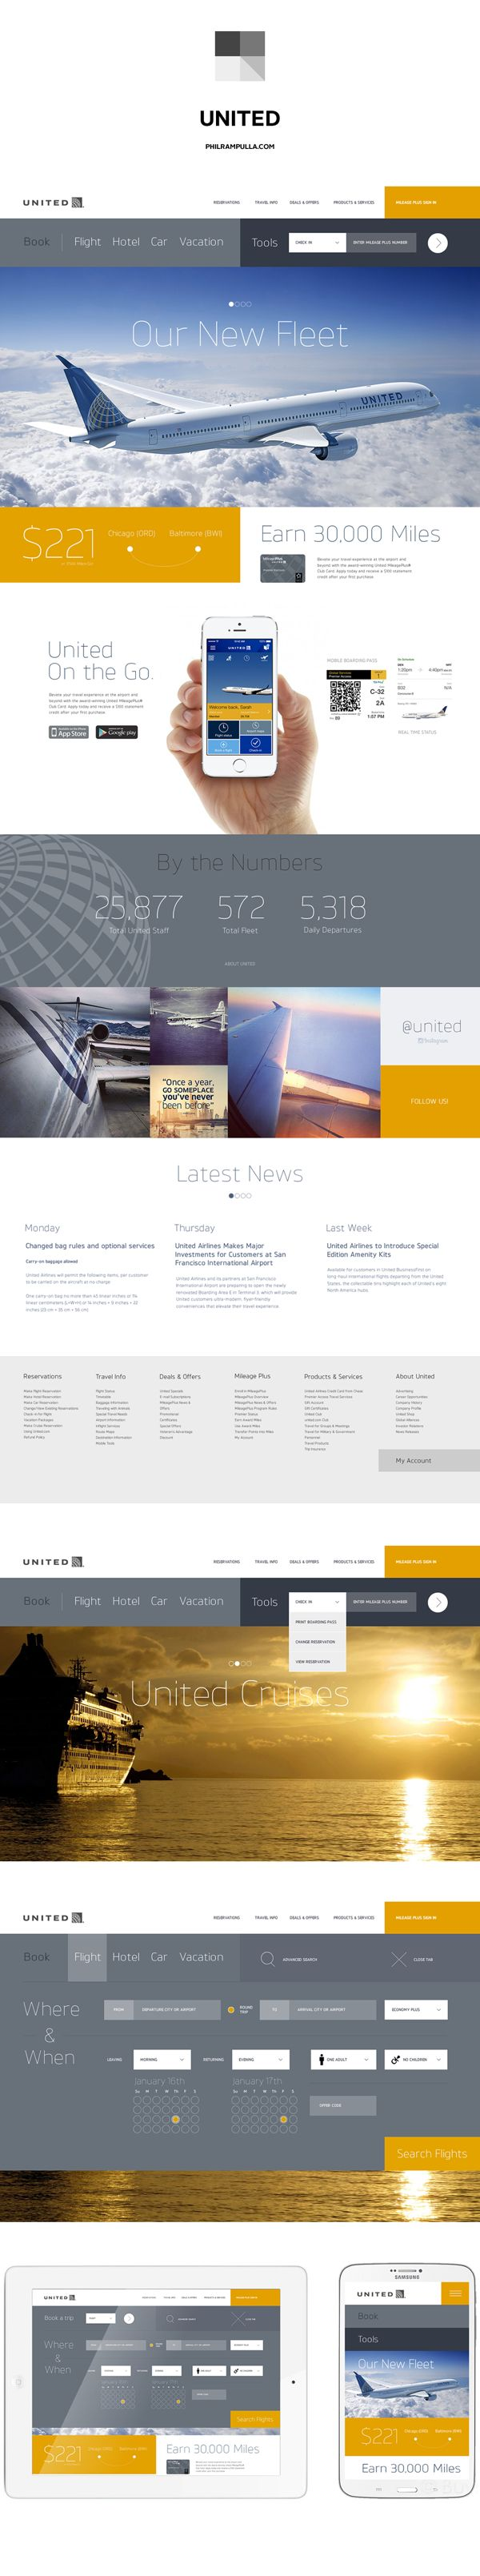 United Airlines Website Redesign by Phil Rampulla, via Behance #UI #UX